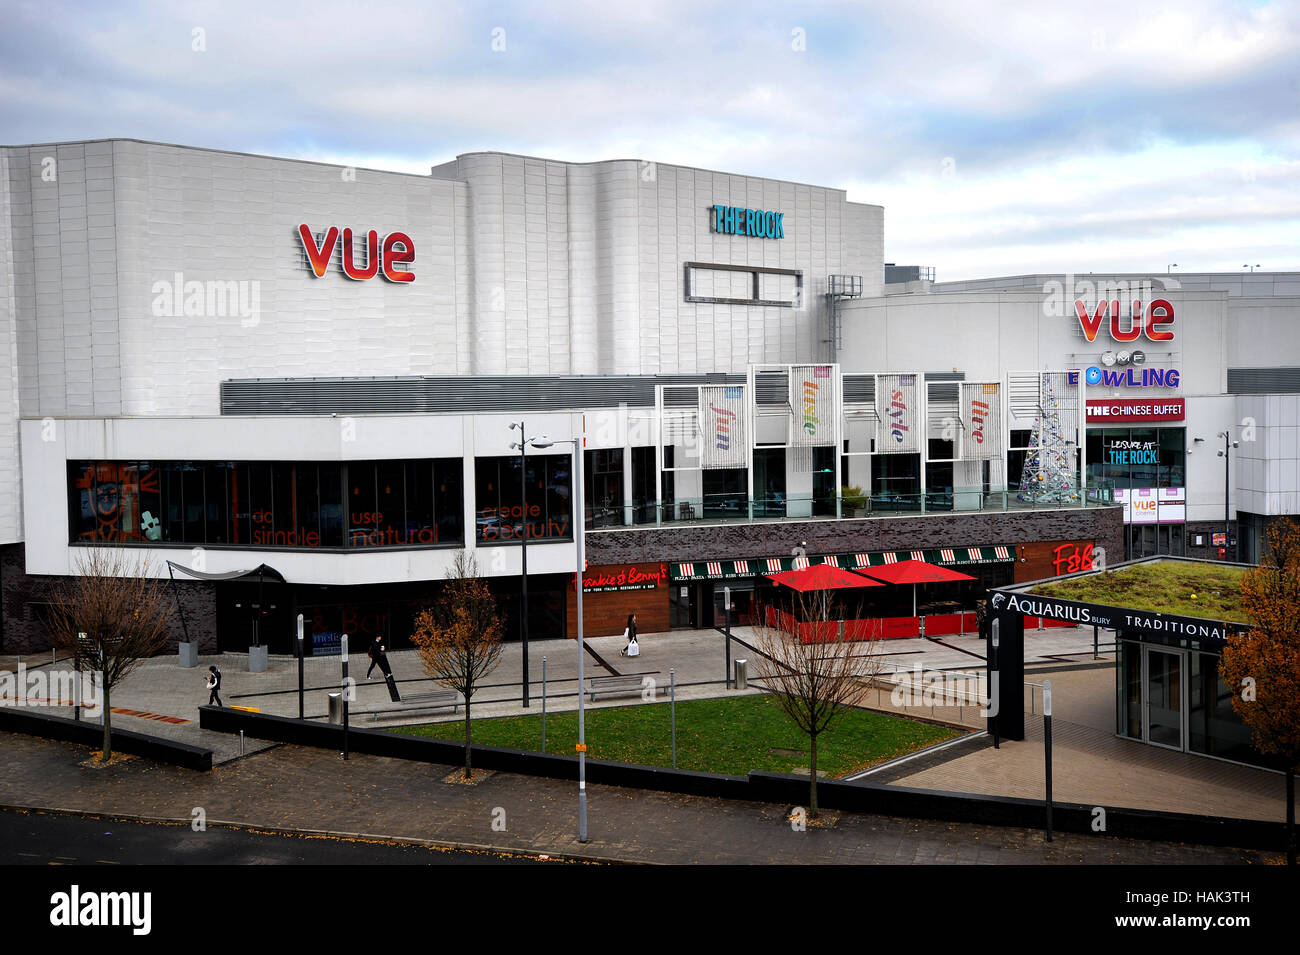 The Rock, shopping and entertainment venue, Bury, Lancashire. Picture by Paul Heyes, Thursday December 01, 2016. - Stock Image